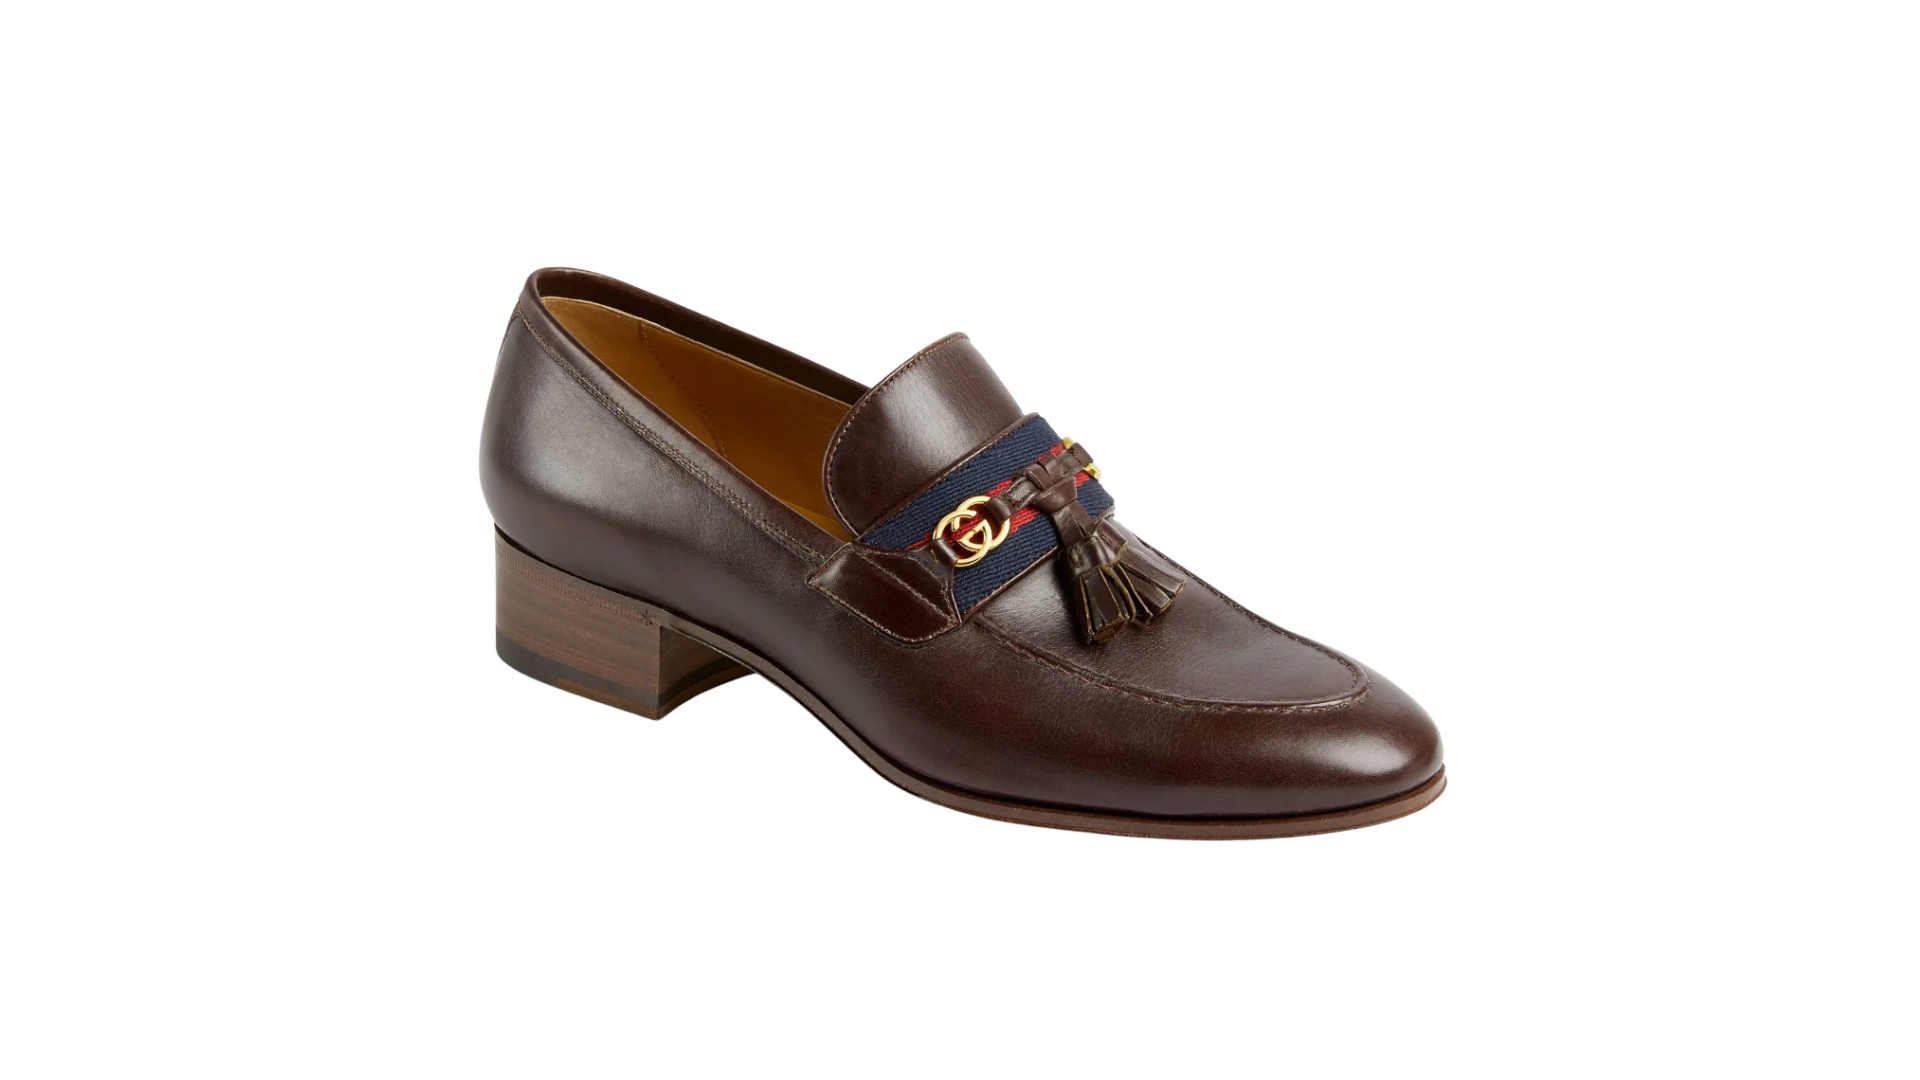 Gucci best clothing stores for women over 50